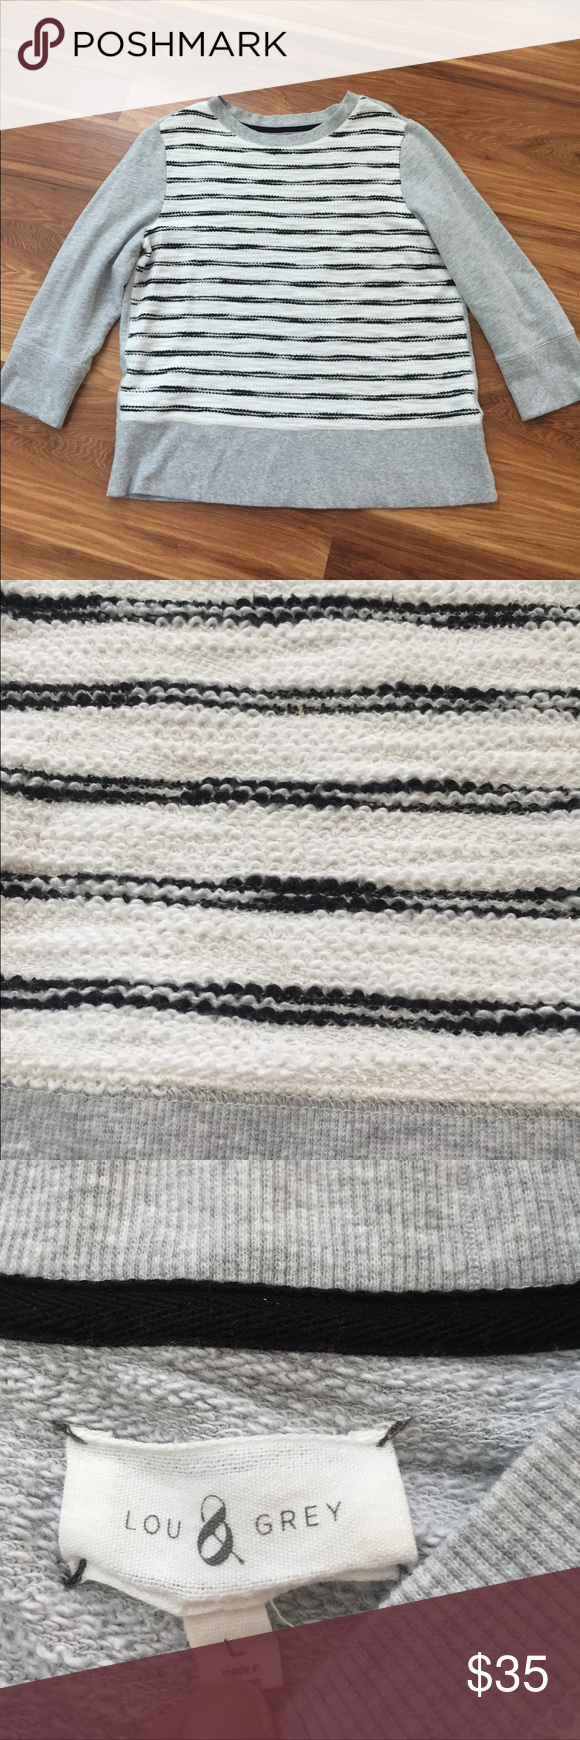 Lou and Grey Pullover sweater sz Large Lou & Grey Pullover Sweater size Large. GREAT gently used condition, minimal signs of wear. Striped black and white in front, solid grey sleeves, back and border. Comfy classy casual ❤️❤️. Lou & Grey Sweaters Crew & Scoop Necks